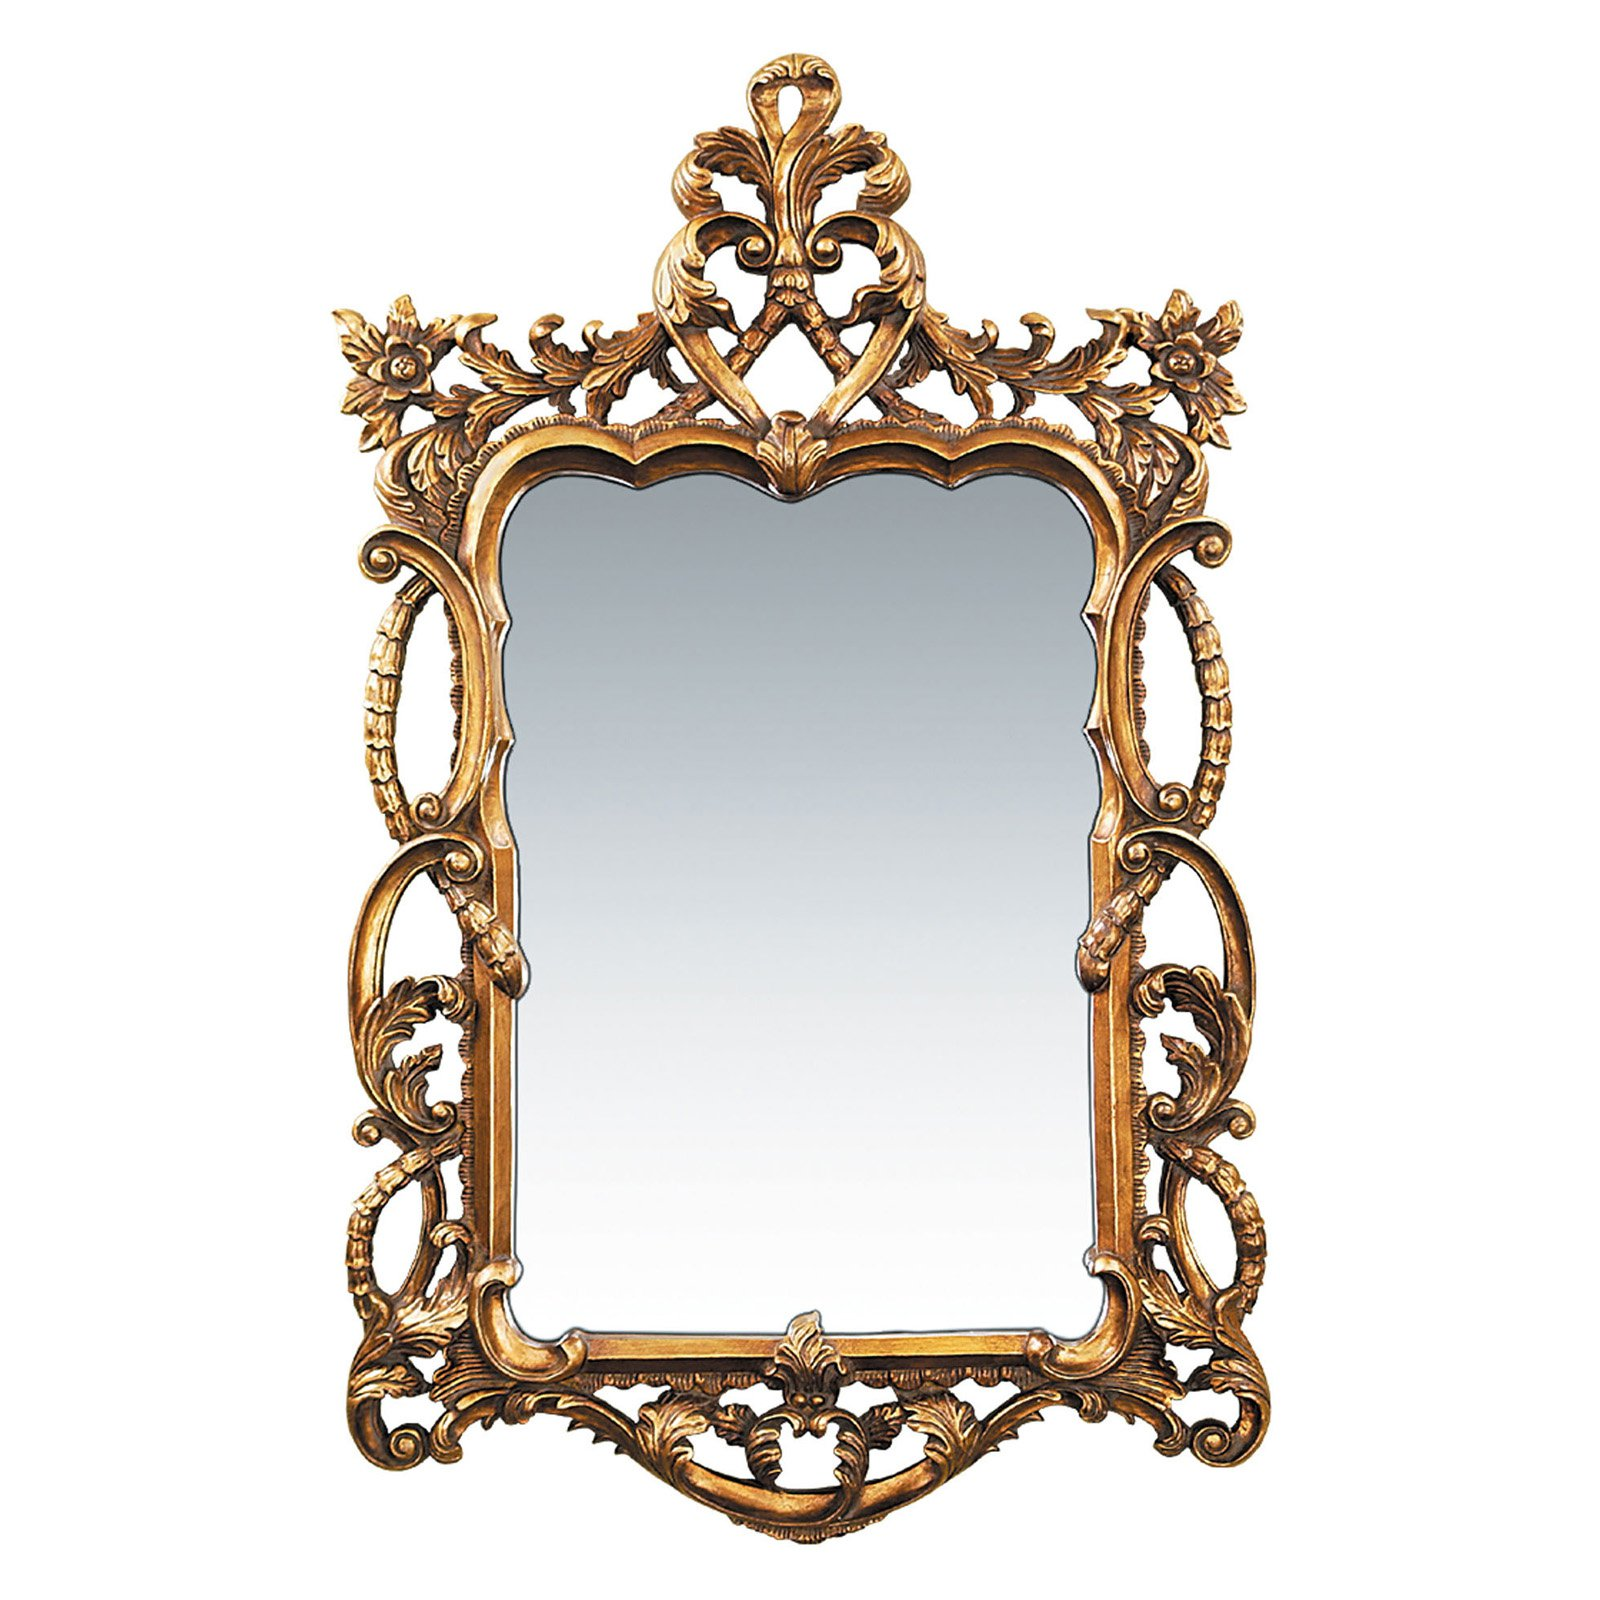 Sterling Floral Scroll Wall Mirror - 29W x 48H in.